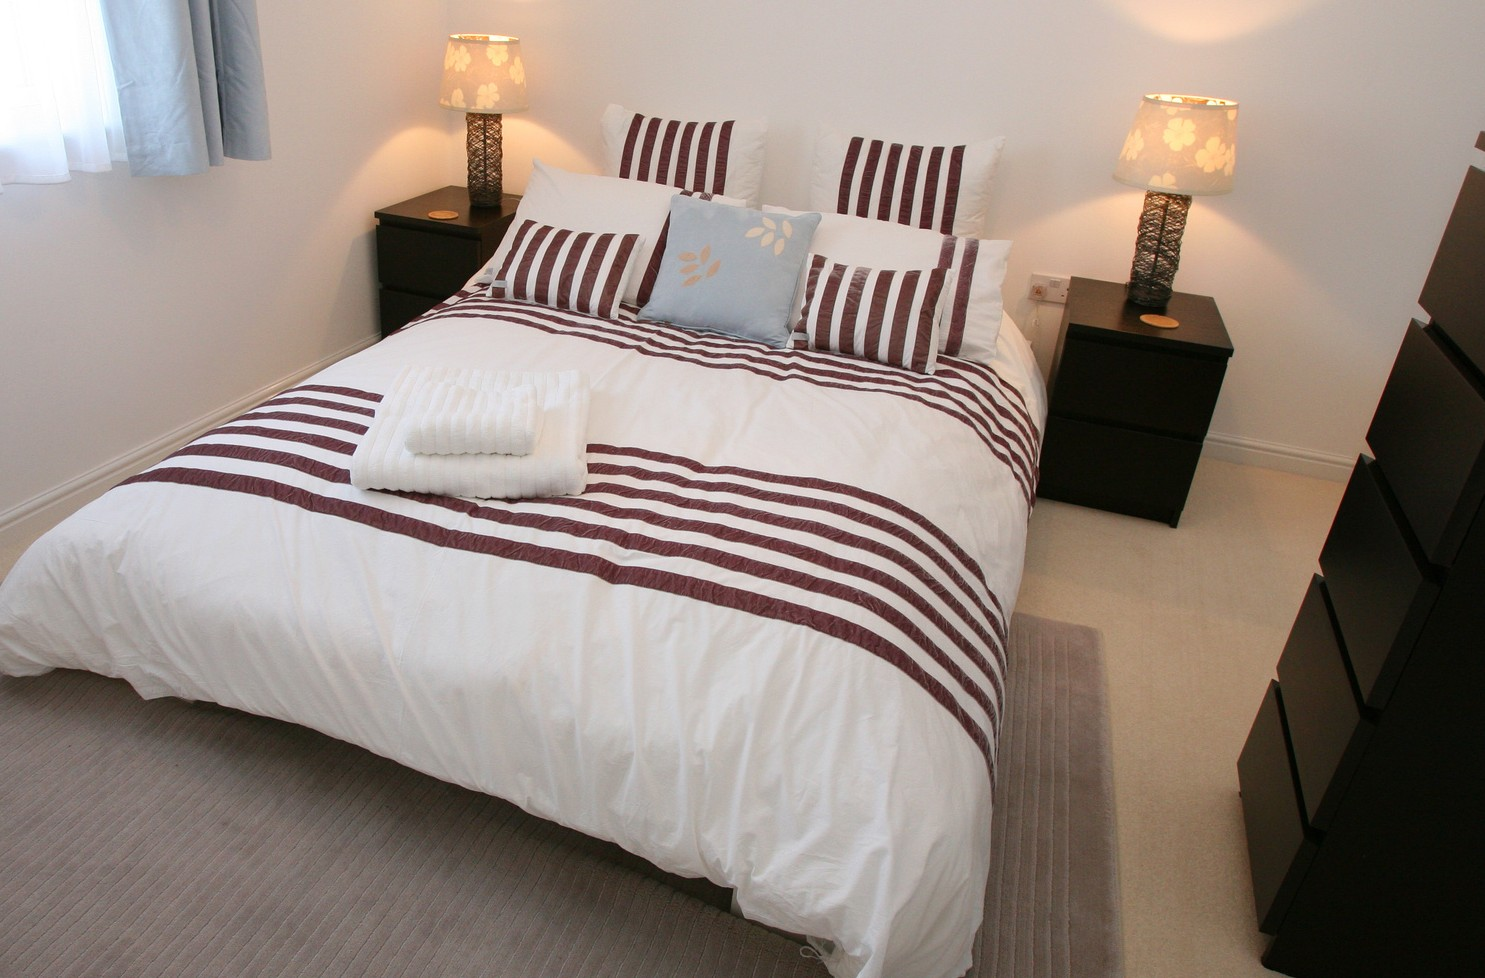 Las mejores maneras para decorar dormitorios masculinos for Simple bedroom designs for men